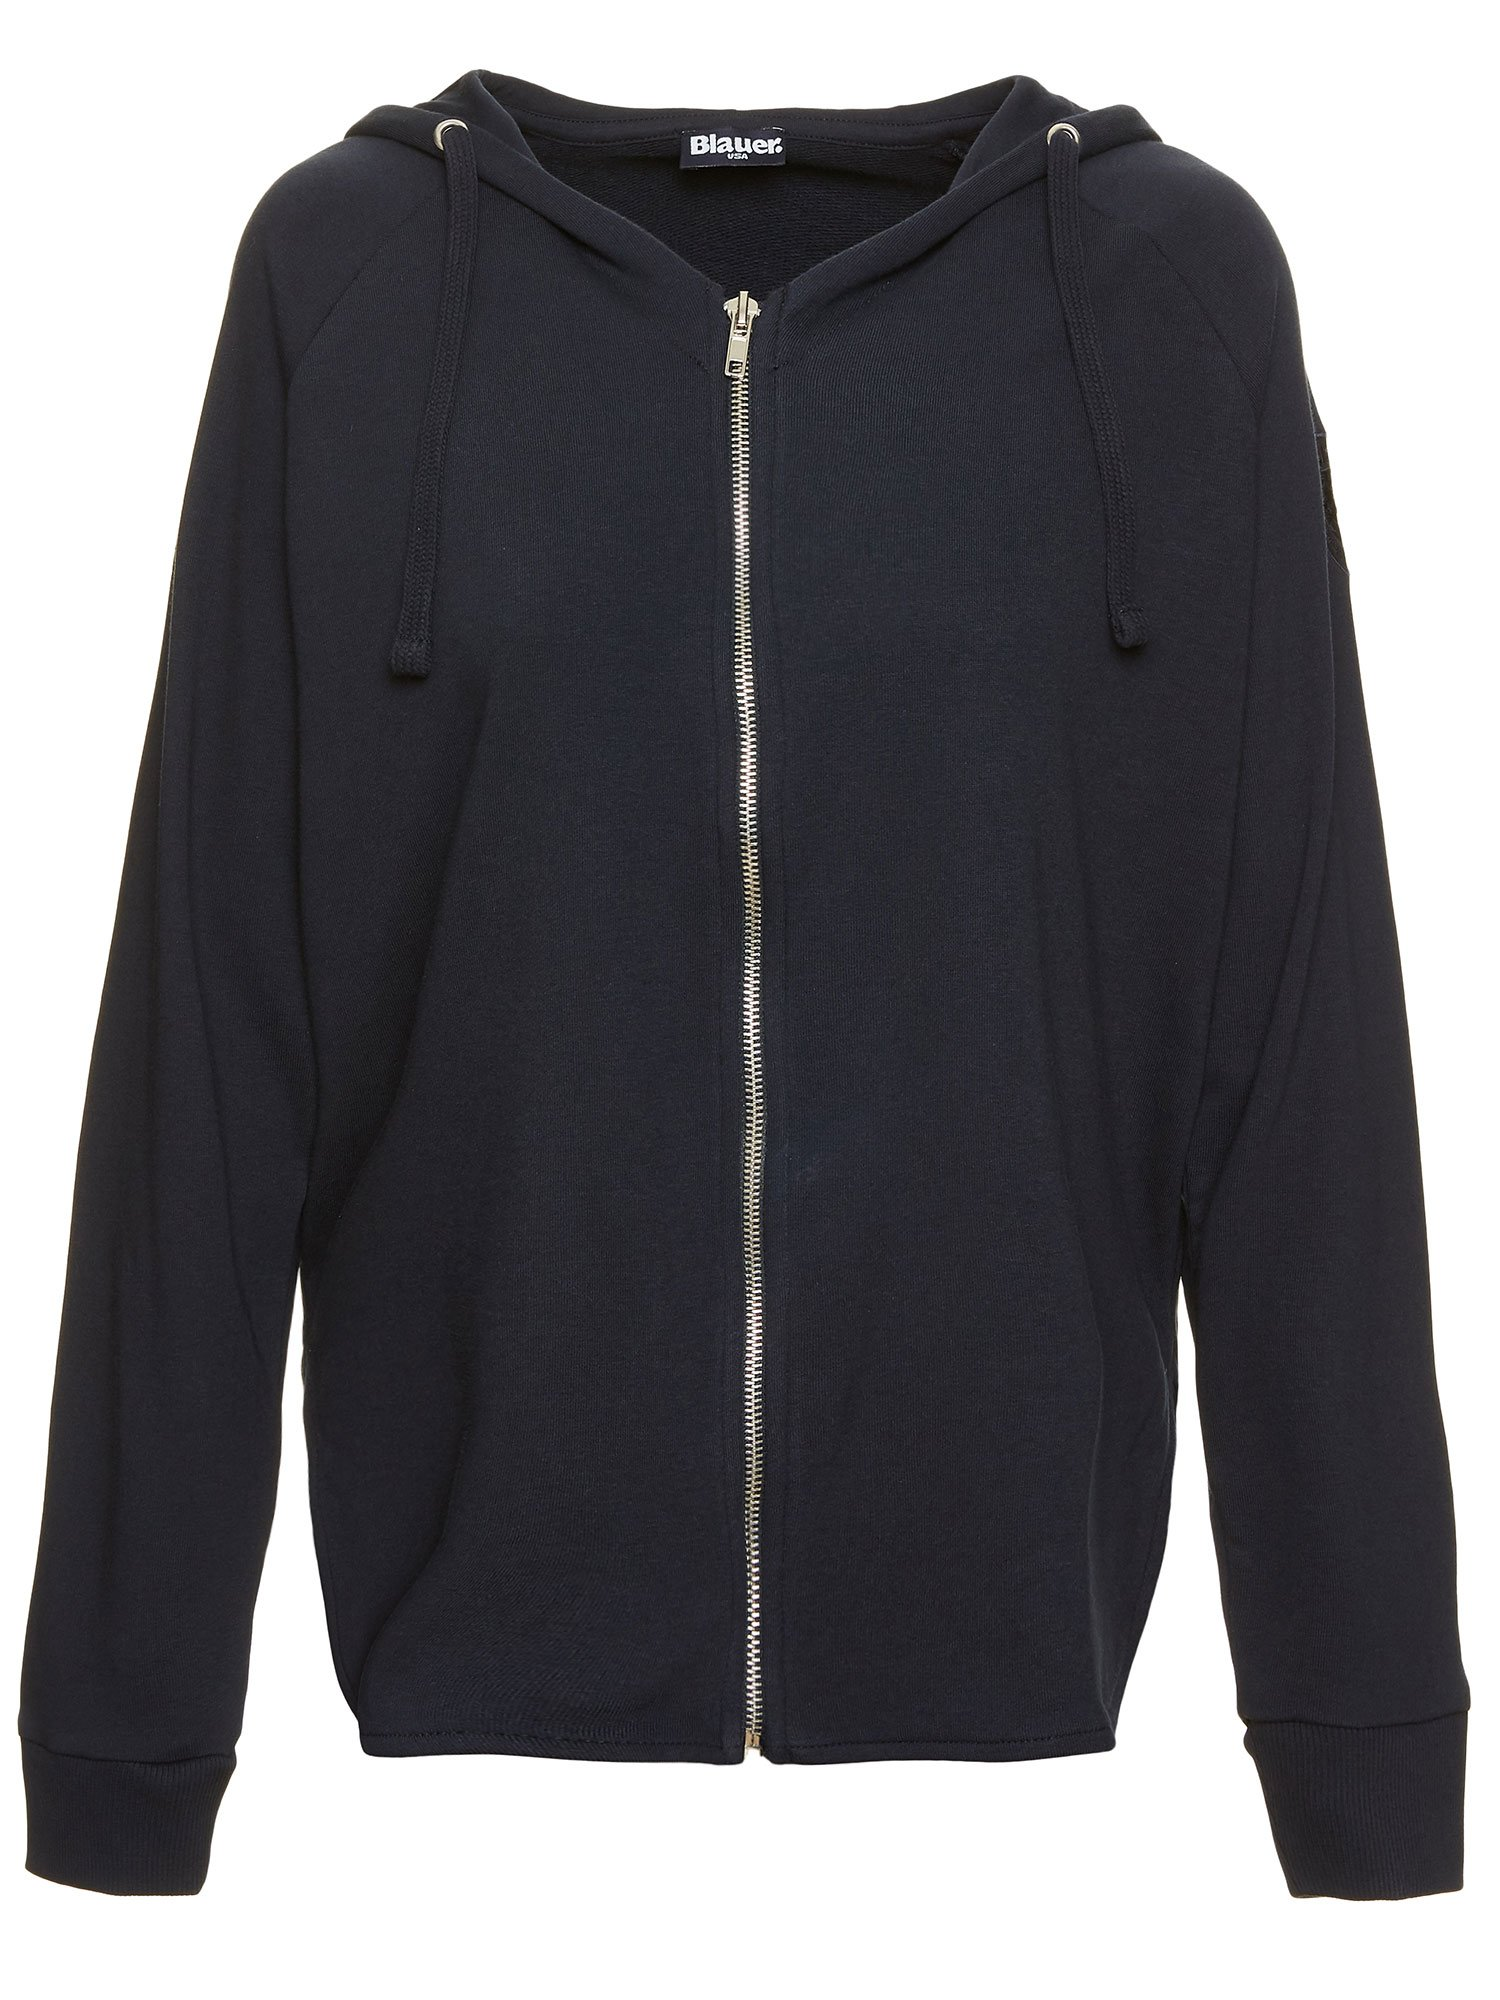 Blauer - MELANGE-SWEATSHIRT MIT KAPUZE - Dark Night Blue - Blauer